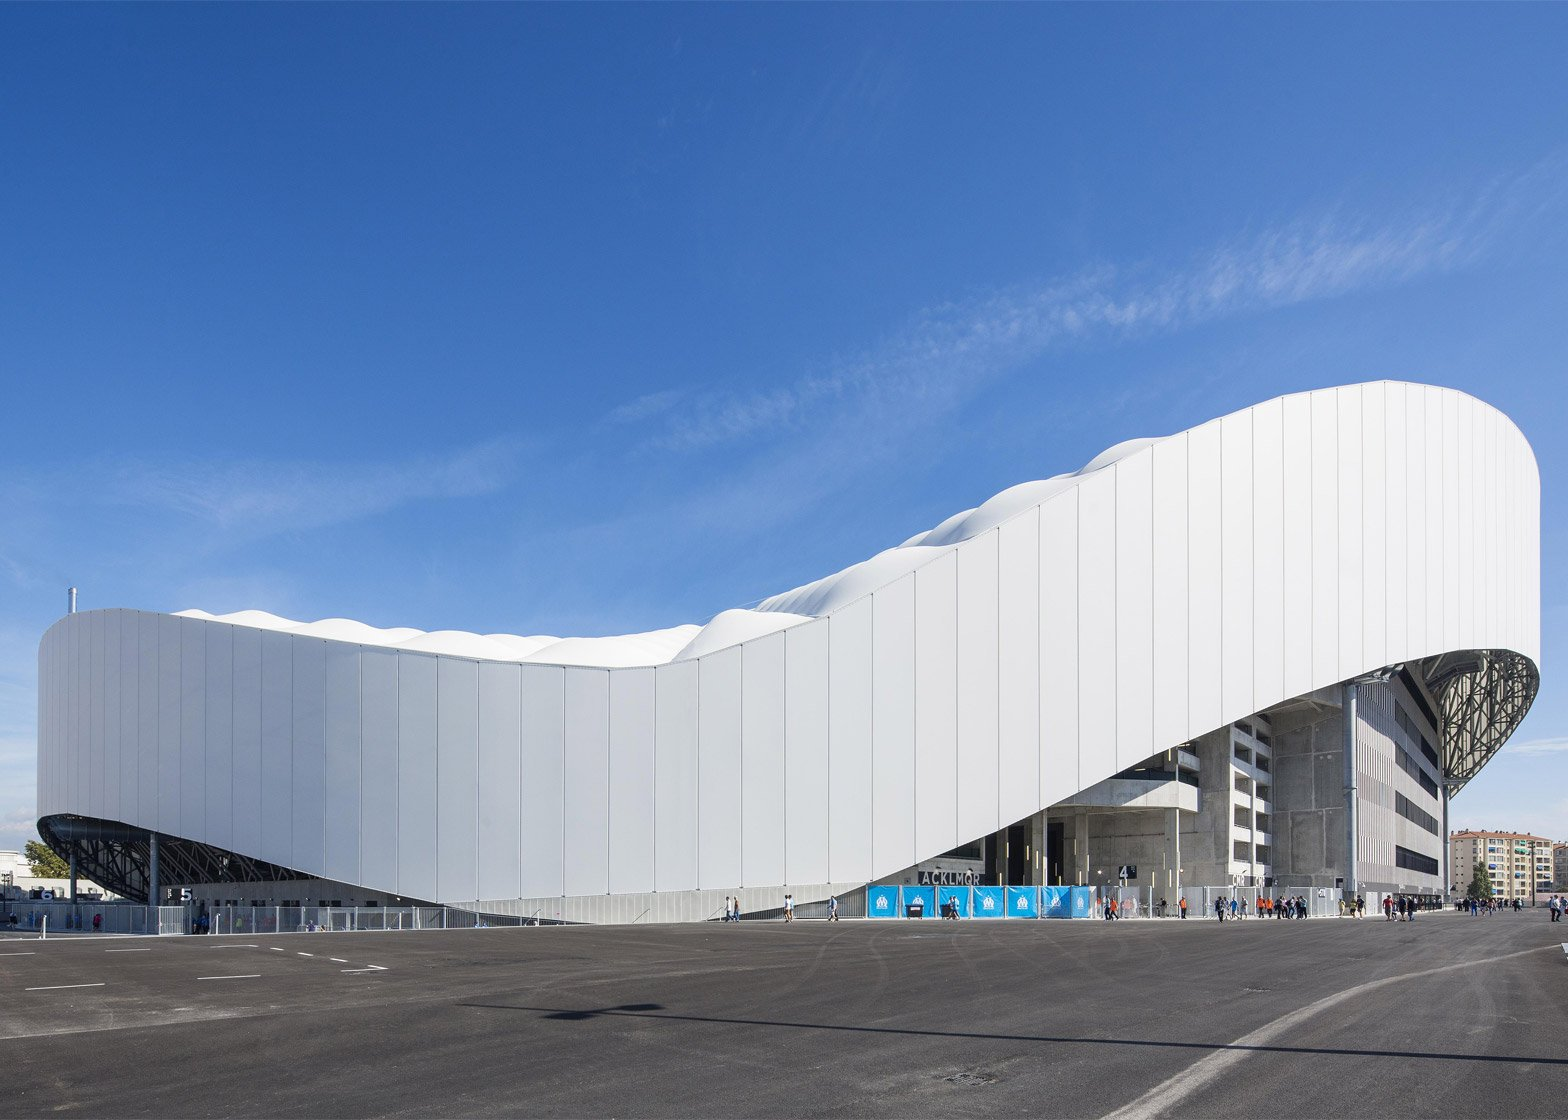 Stade Vélodrome in Marseille by SCAU